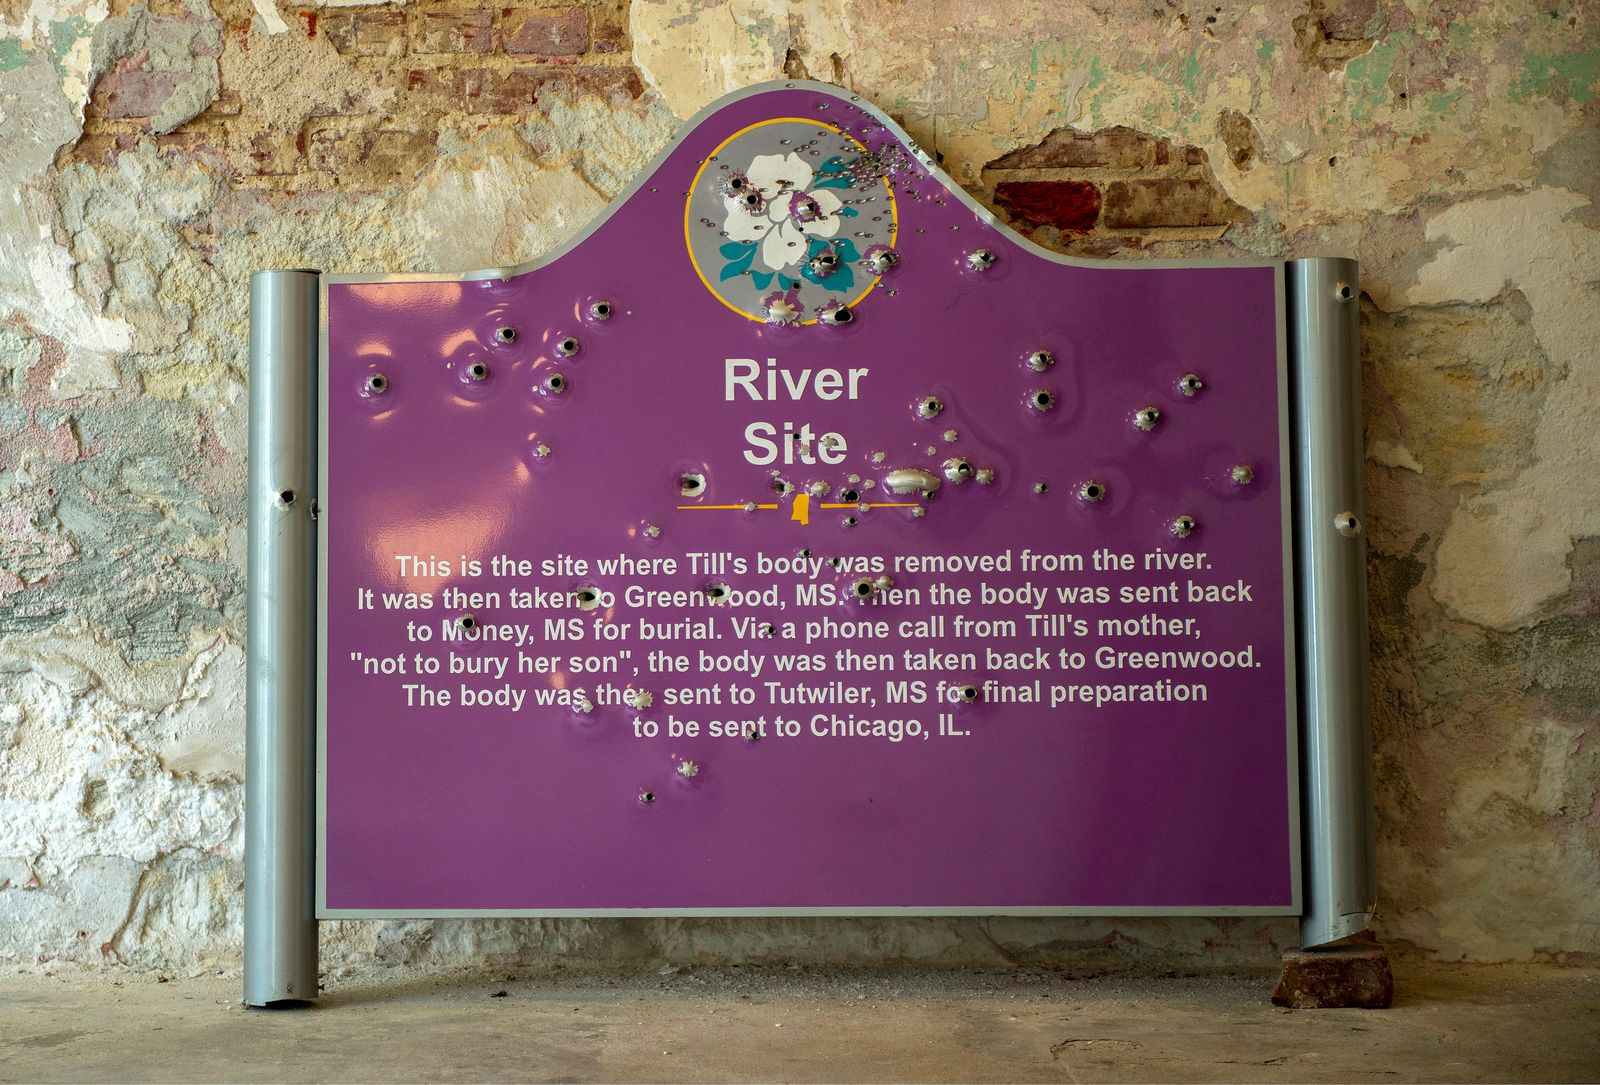 The sign marking the river where Emmett Till's body was found is moved to the Emmett Till Interpretive Center after it was vandalized, in Sumner, Miss., July 19, 2018. (Robert Rausch/The New York Times)